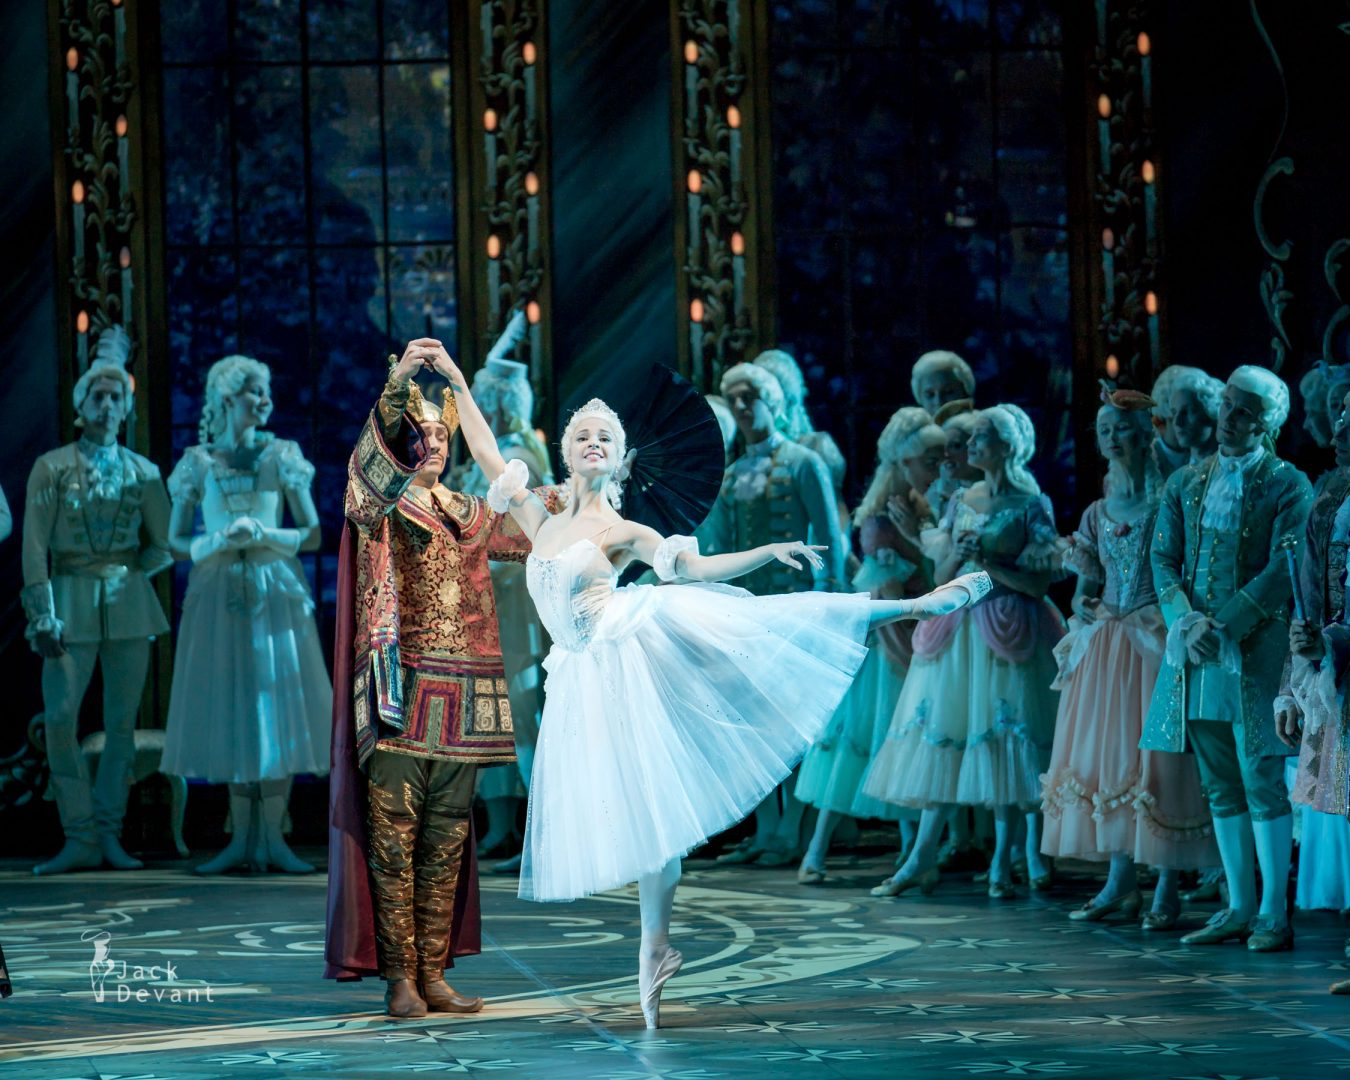 Angelina Vorontsova (Анжелина Воронцова) as Cinderella and foreign prince Mikhailovsky Theatre